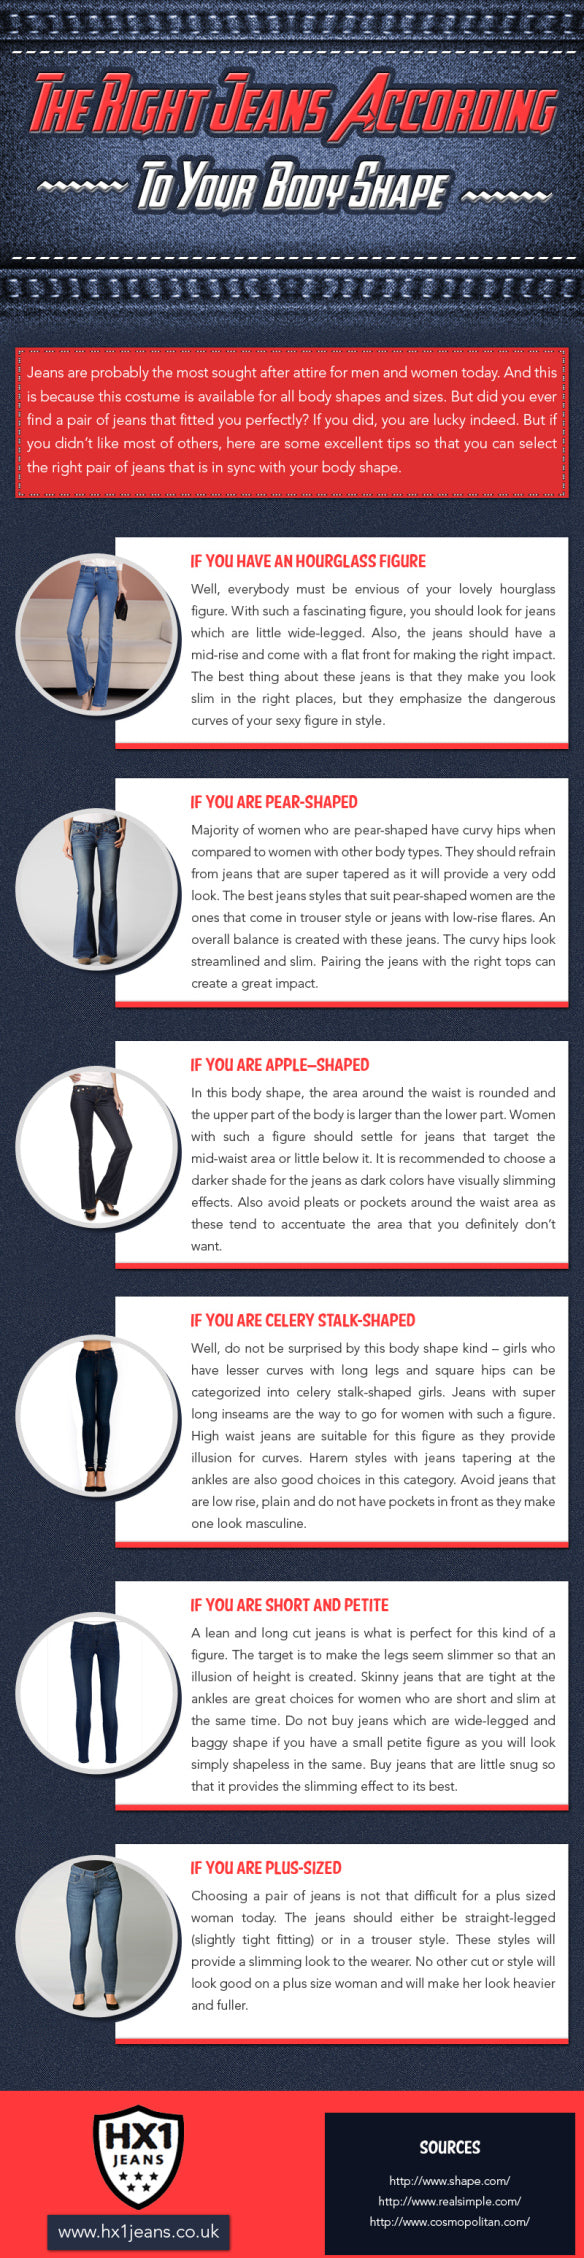 Choose the Right Jeans According to Your Body Shape [Infographic]